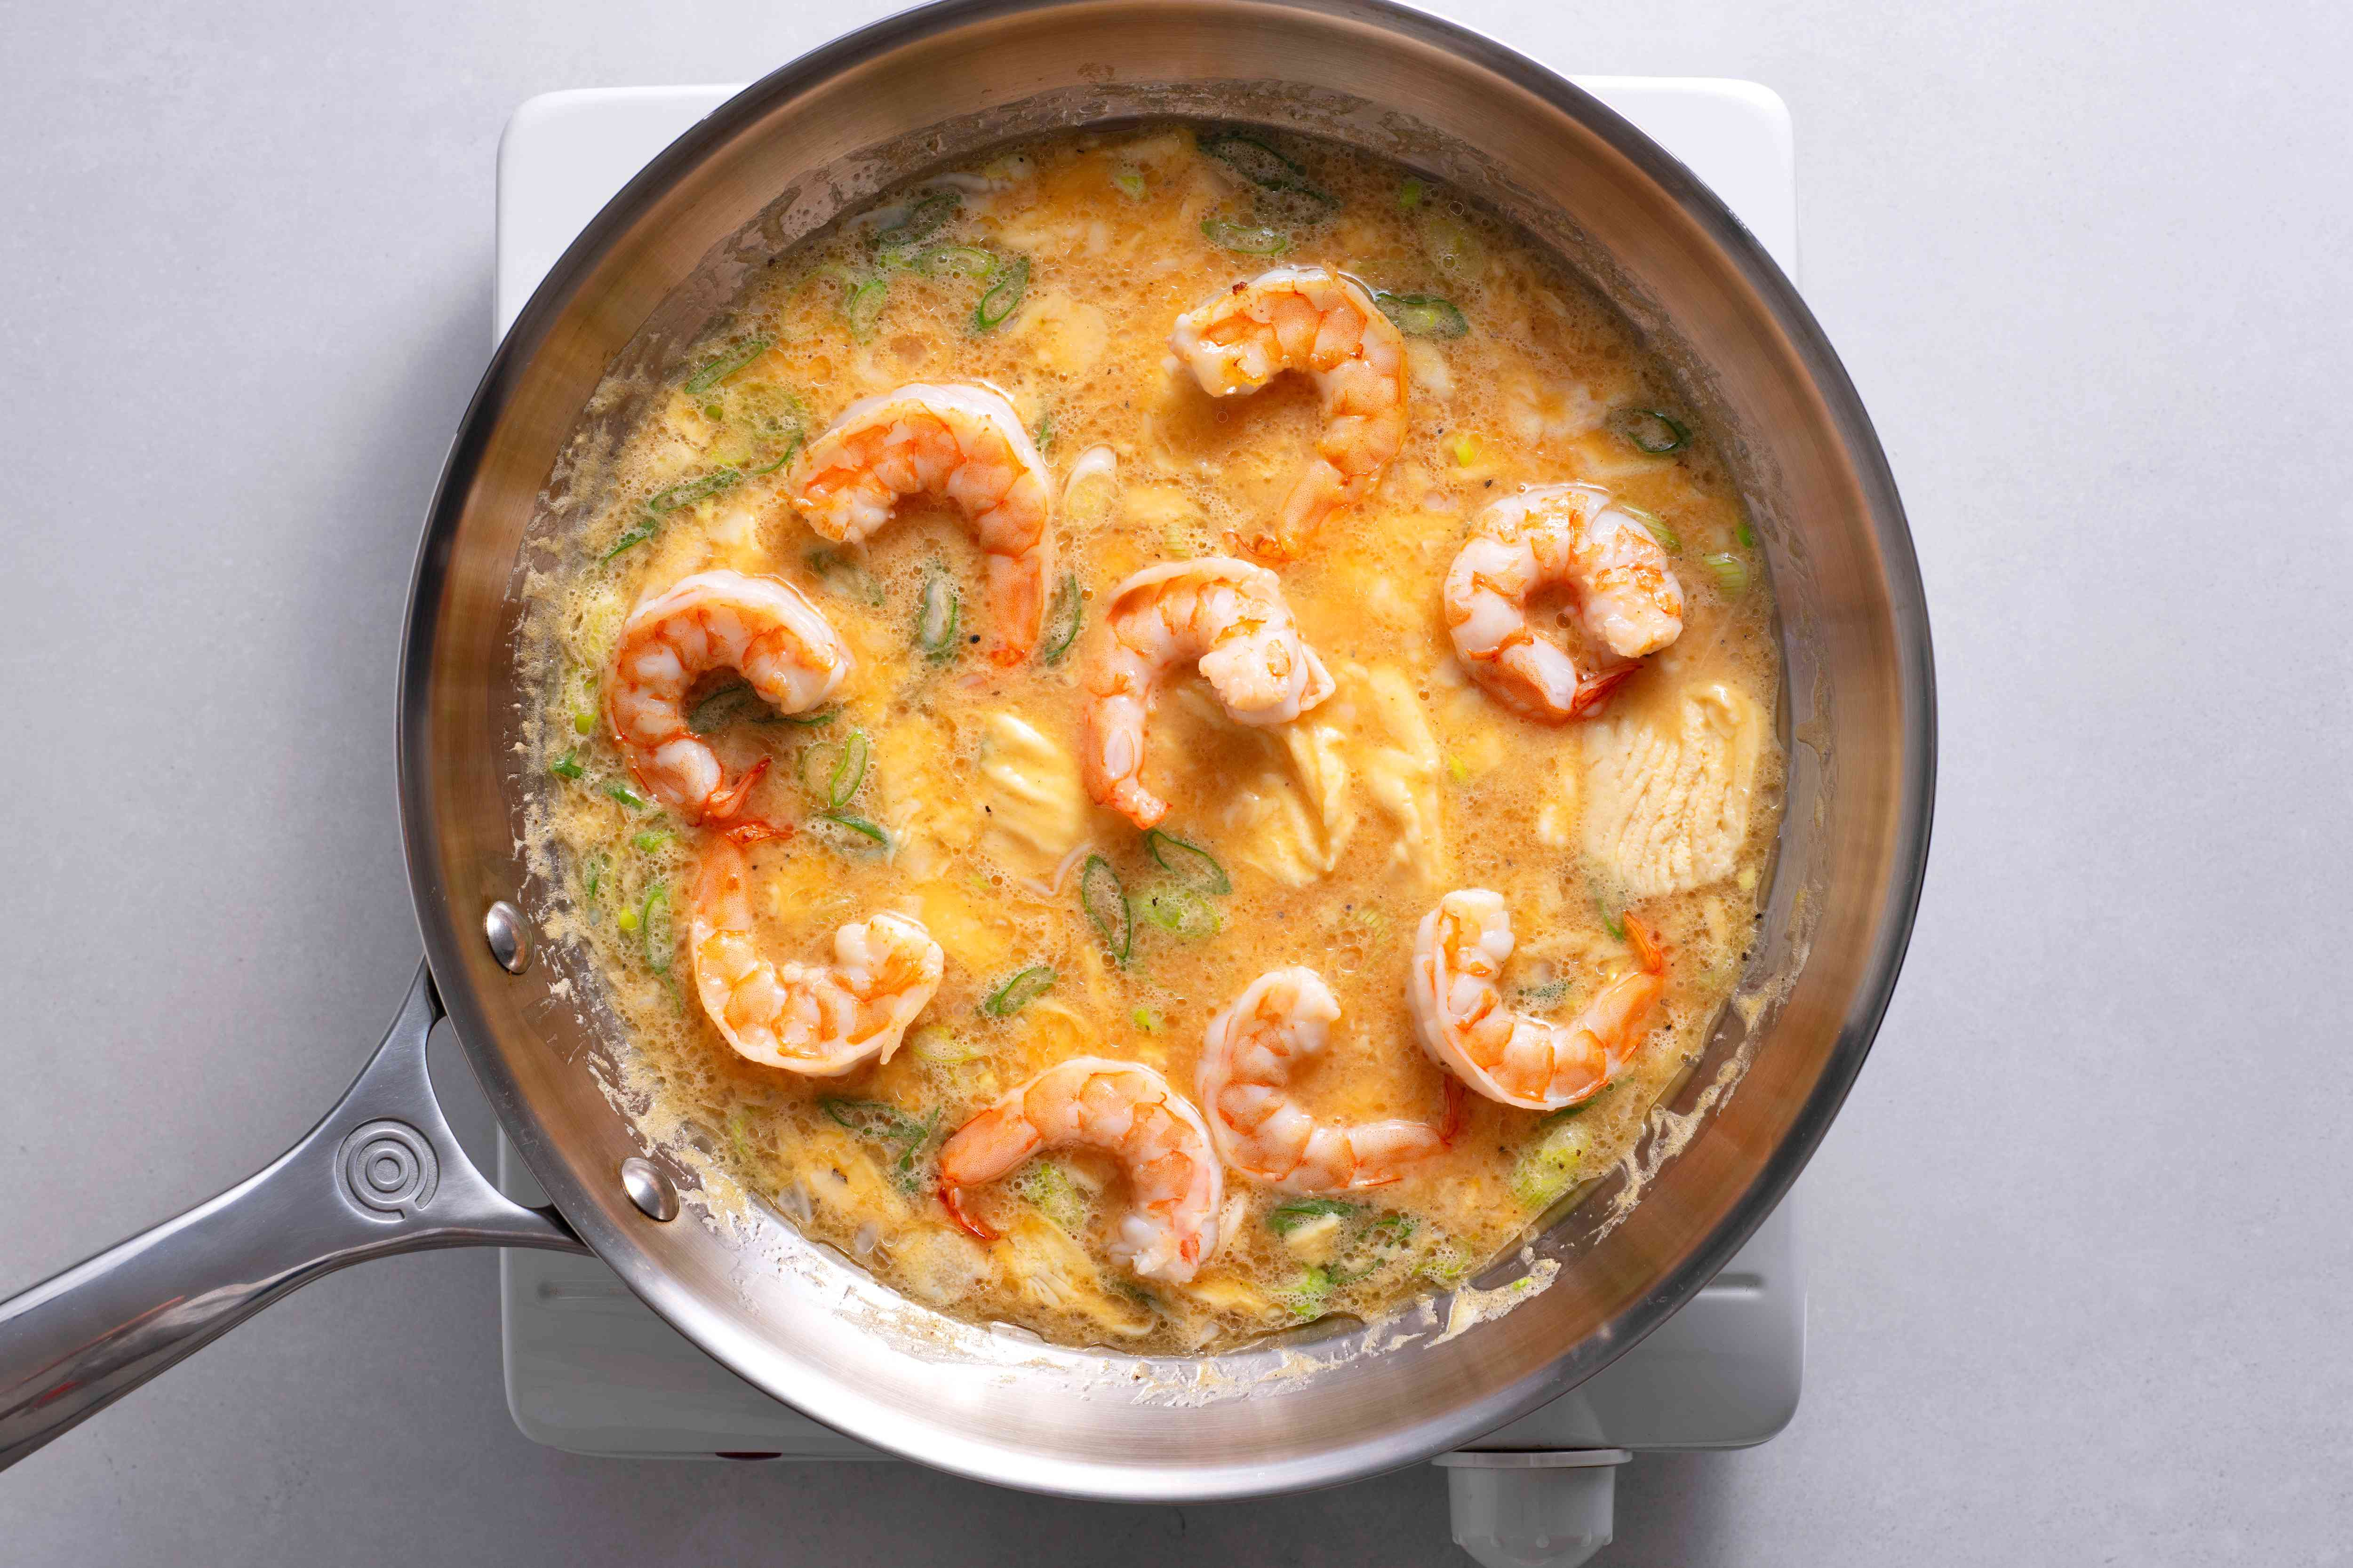 Egg mixture and shrimp cooking in a pan